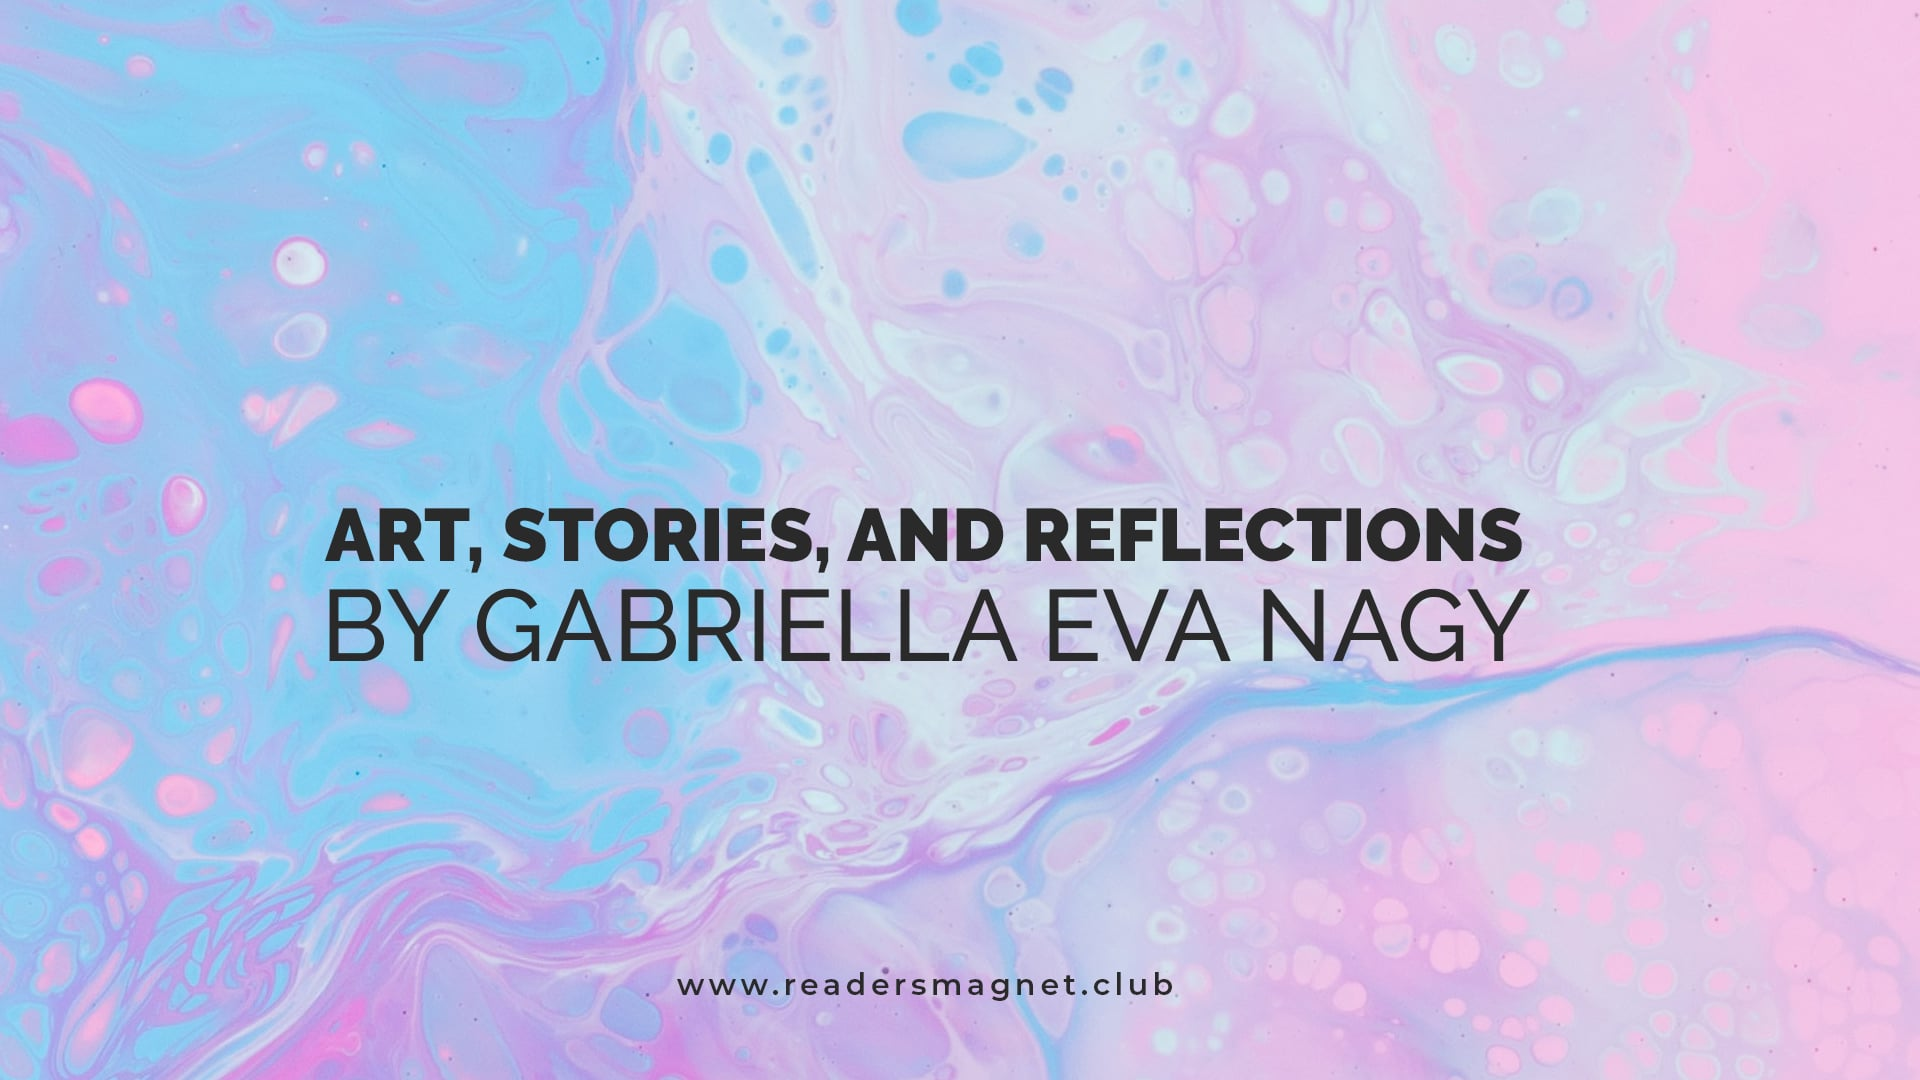 Art Stories and Reflections by Gabriella Eva banner